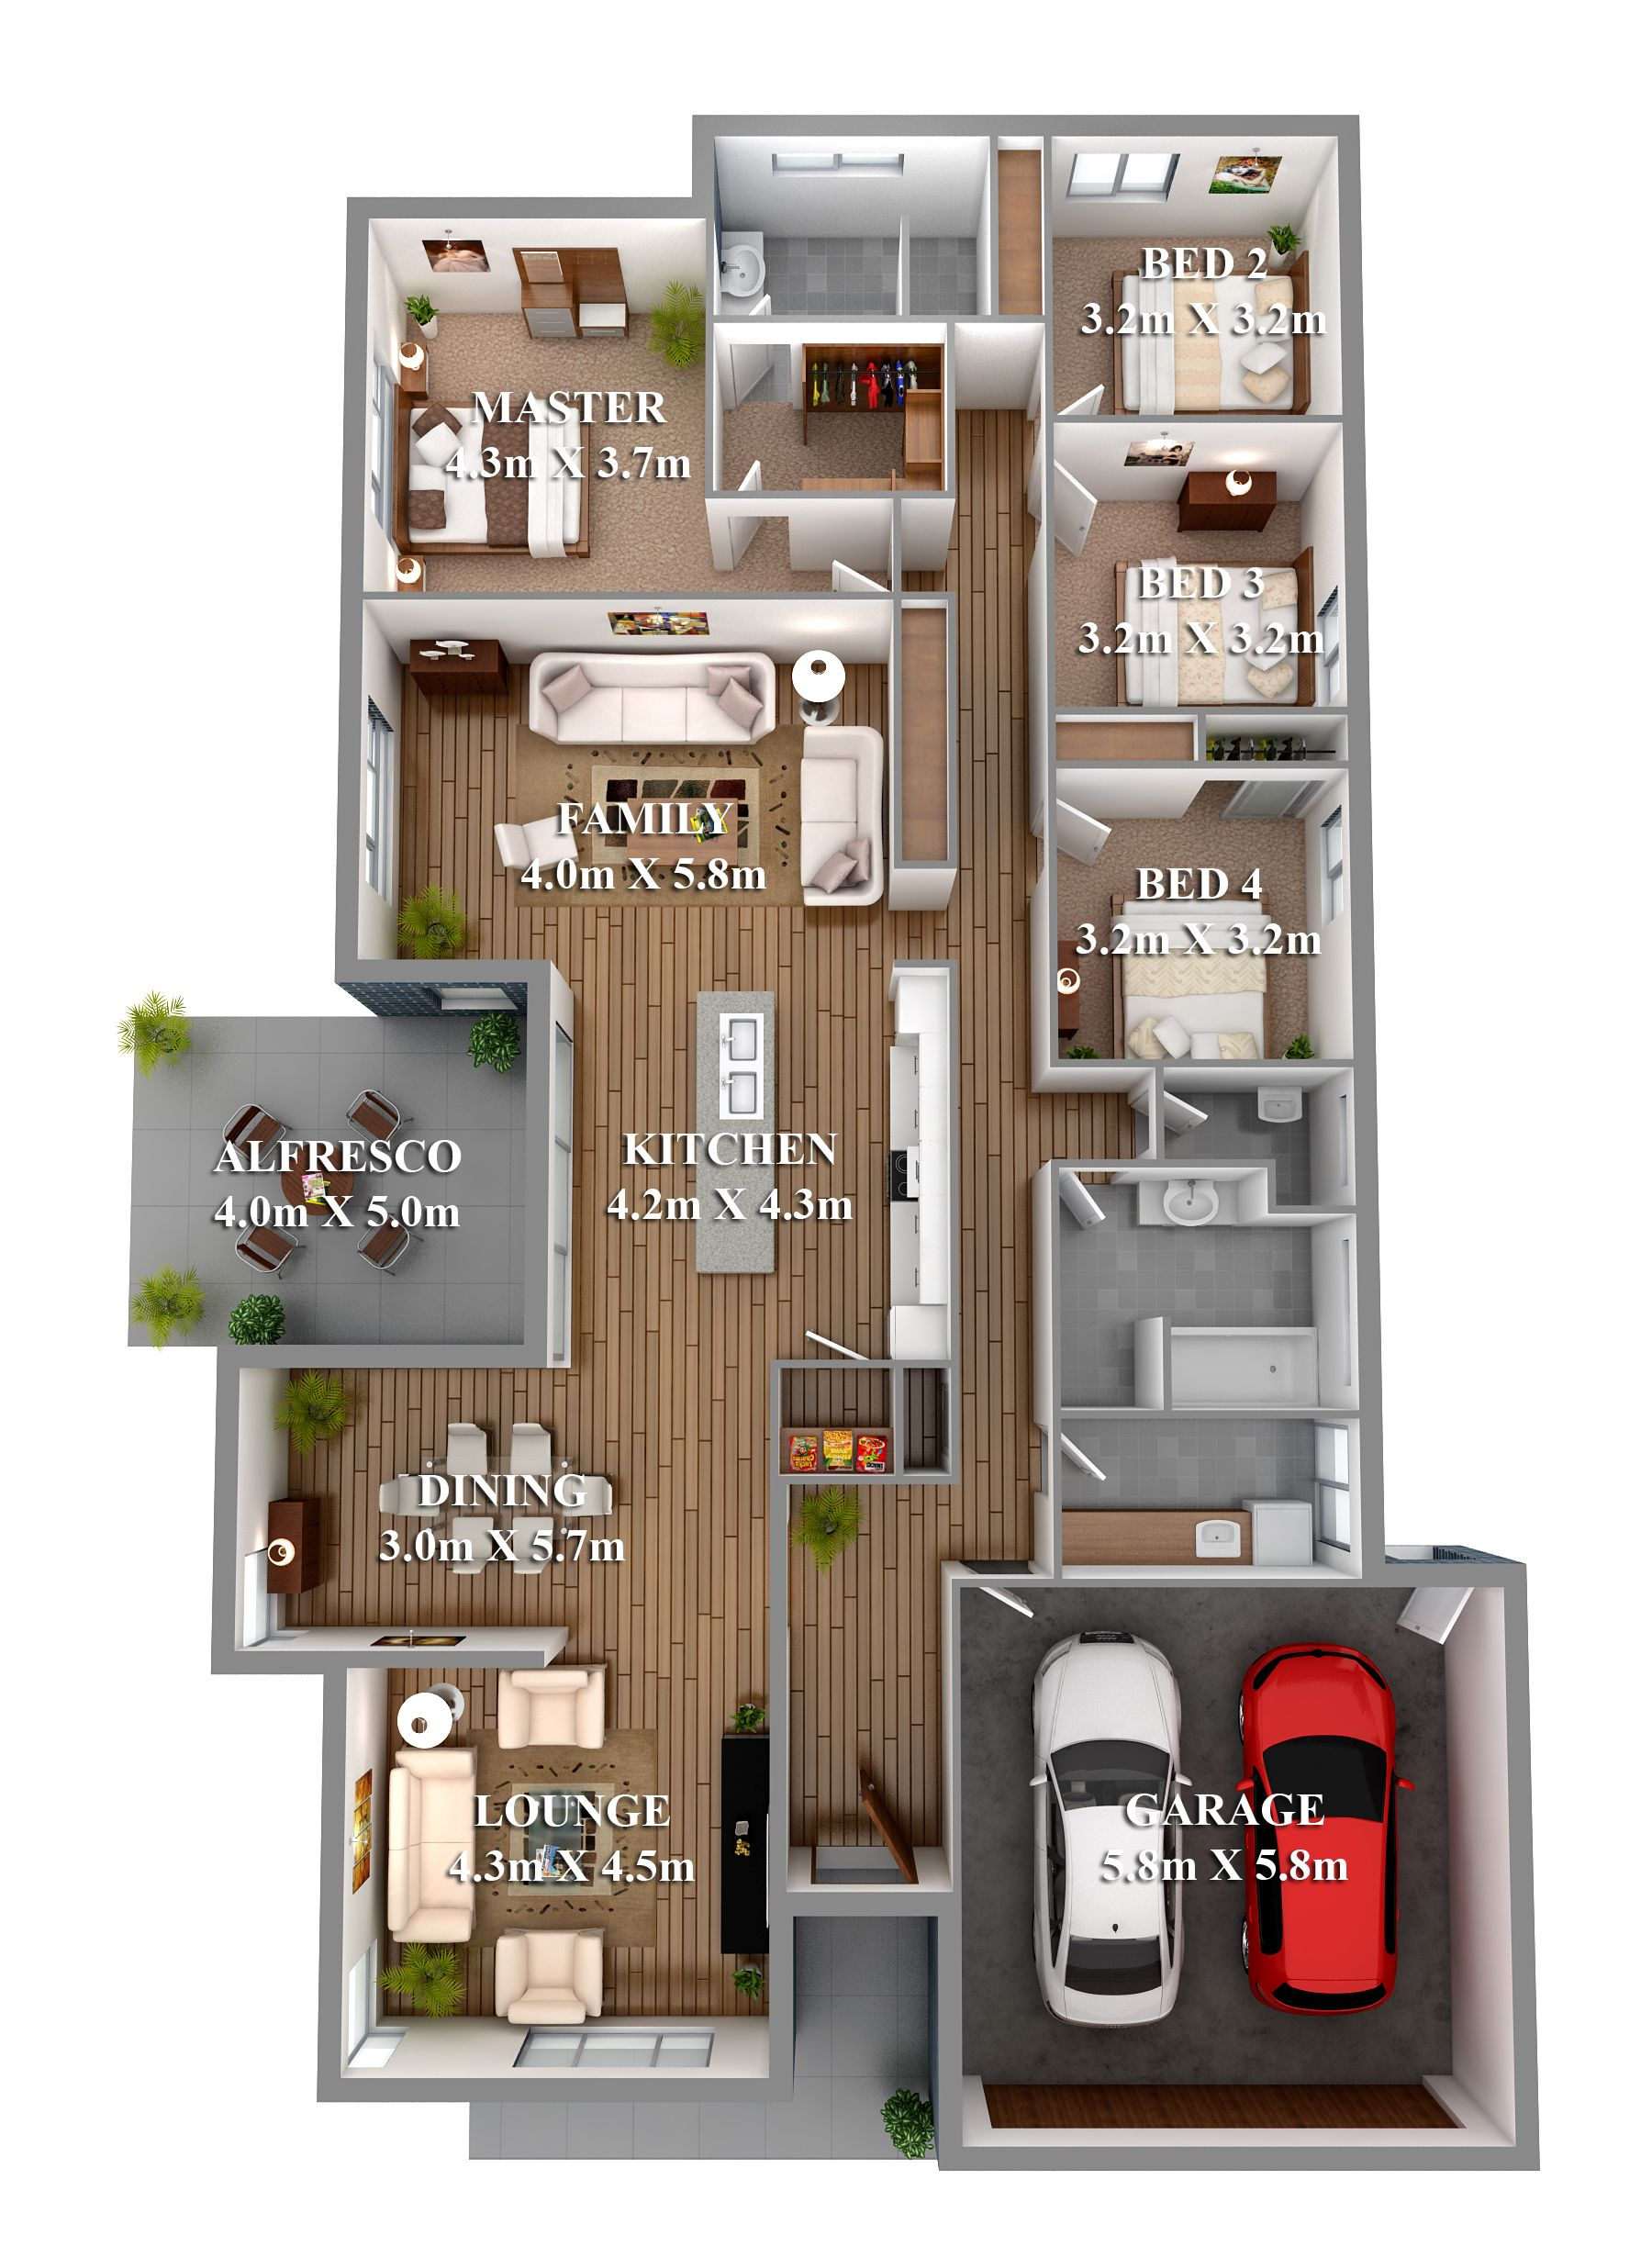 3d Floor Plan For Real Estate Marketing Mudgee Nsw 3d Floor Plan Gallery In 2020 Simple House Plans Bungalow House Plans 3d House Plans